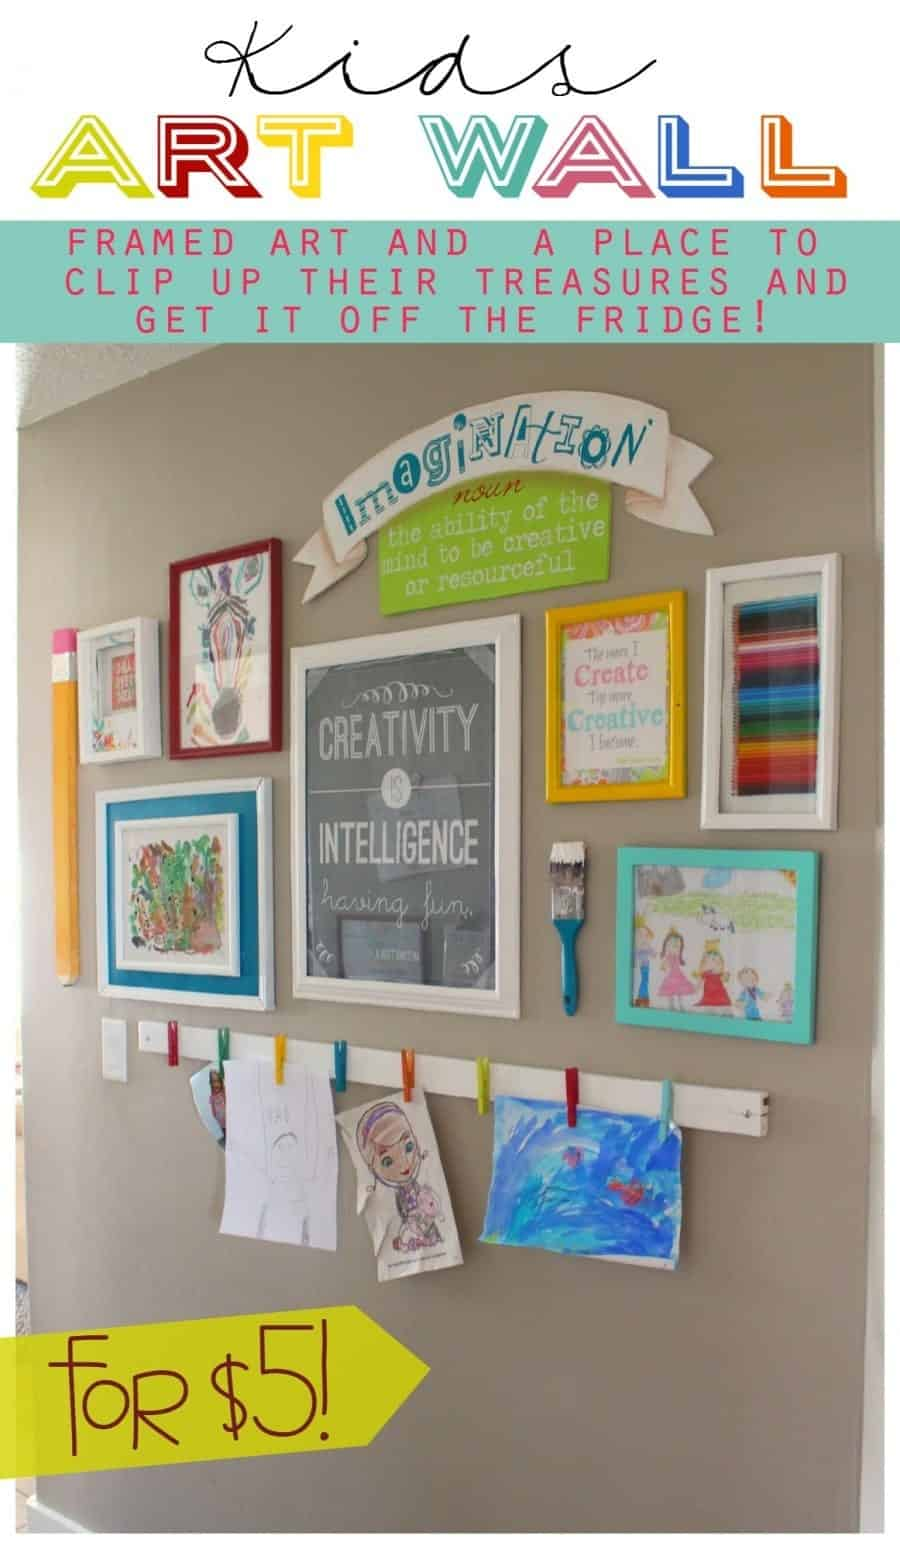 kids-artwall-easy-diy-to-get-your-kids-art-off-the-fridge-900x1549